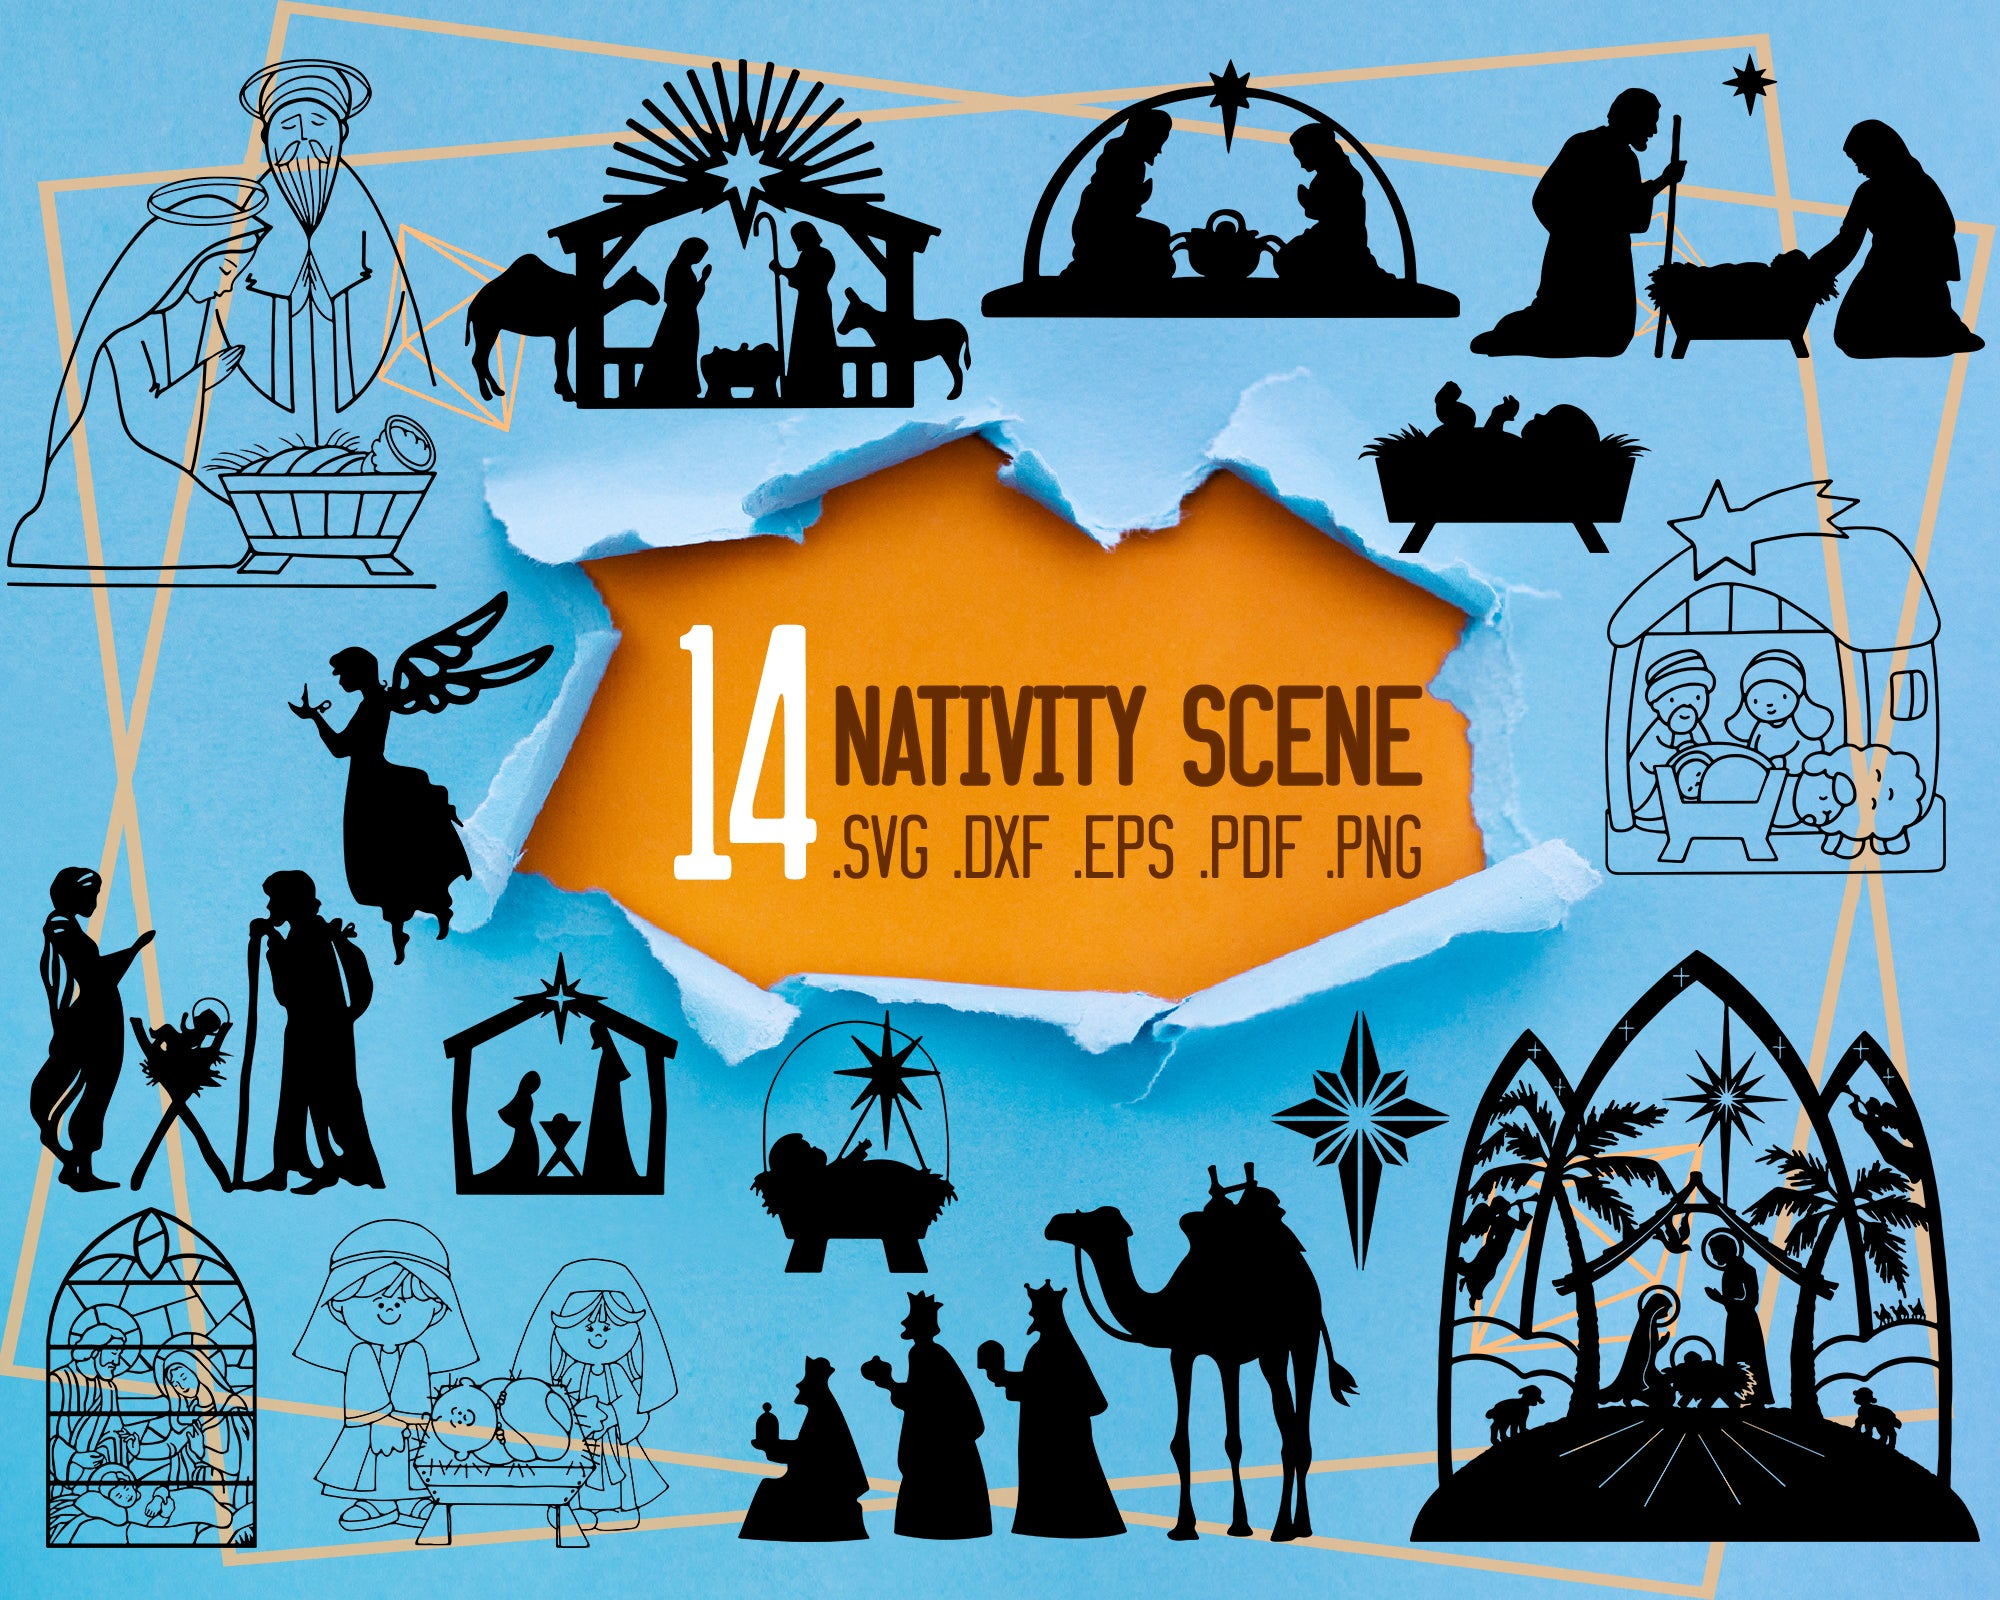 Nativity Scene Svg Nativity Svg Nativity Scene Svg Christmas Svg H Clipartic